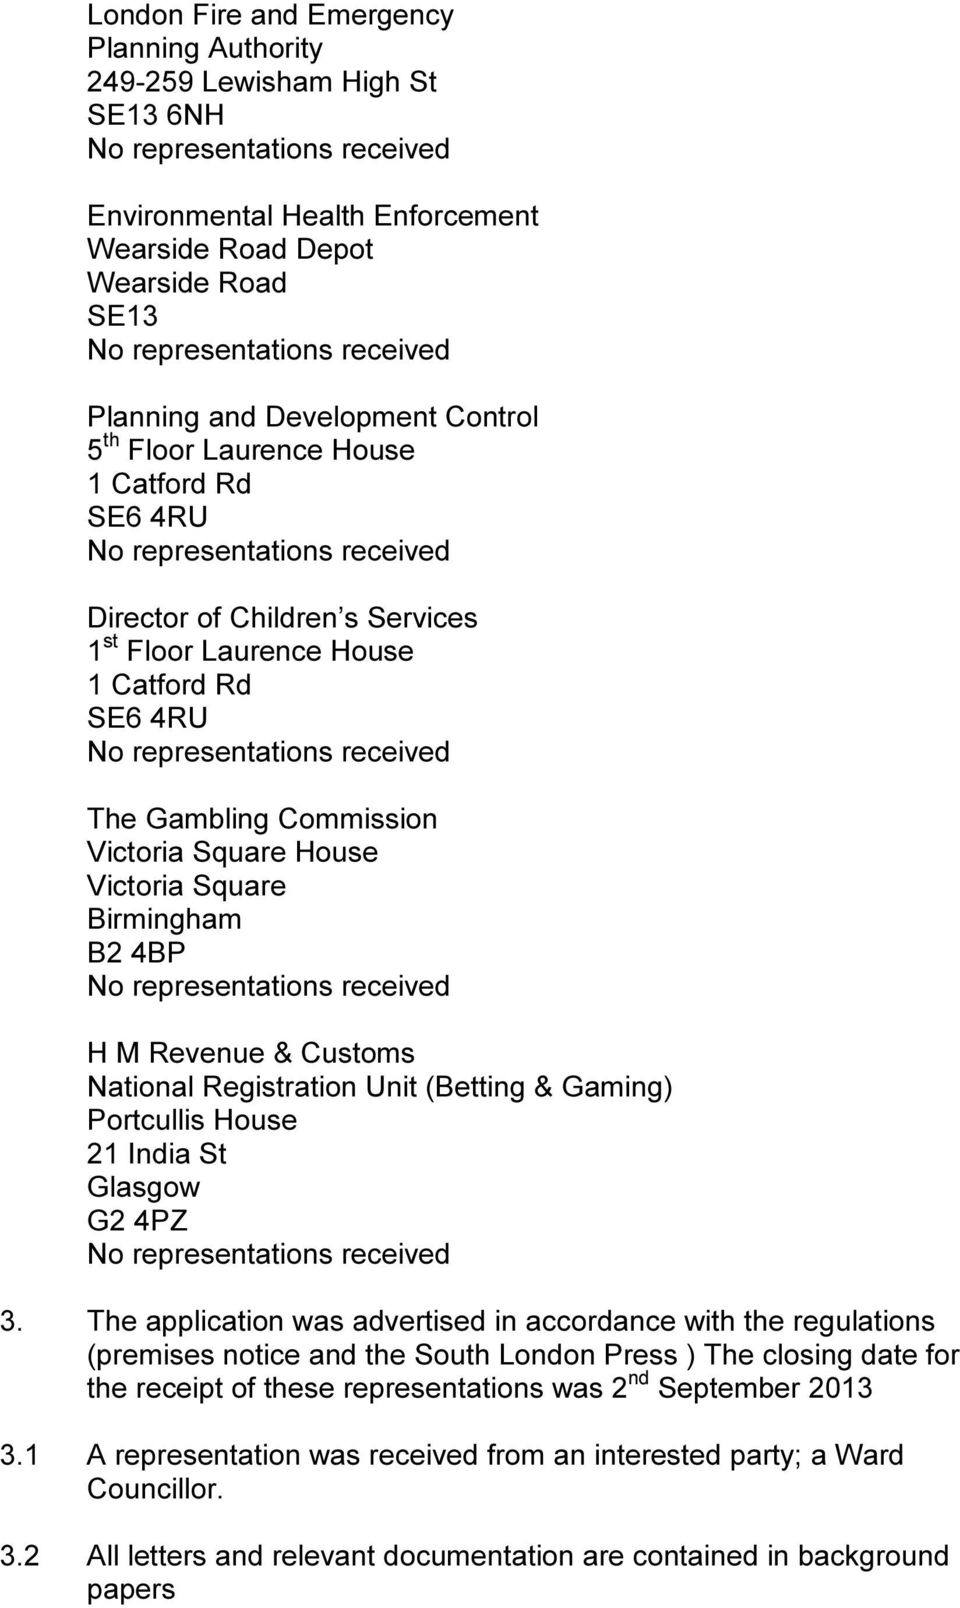 Revenue & Customs National Registration Unit (Betting & Gaming) Portcullis House 21 India St Glasgow G2 4PZ 3.